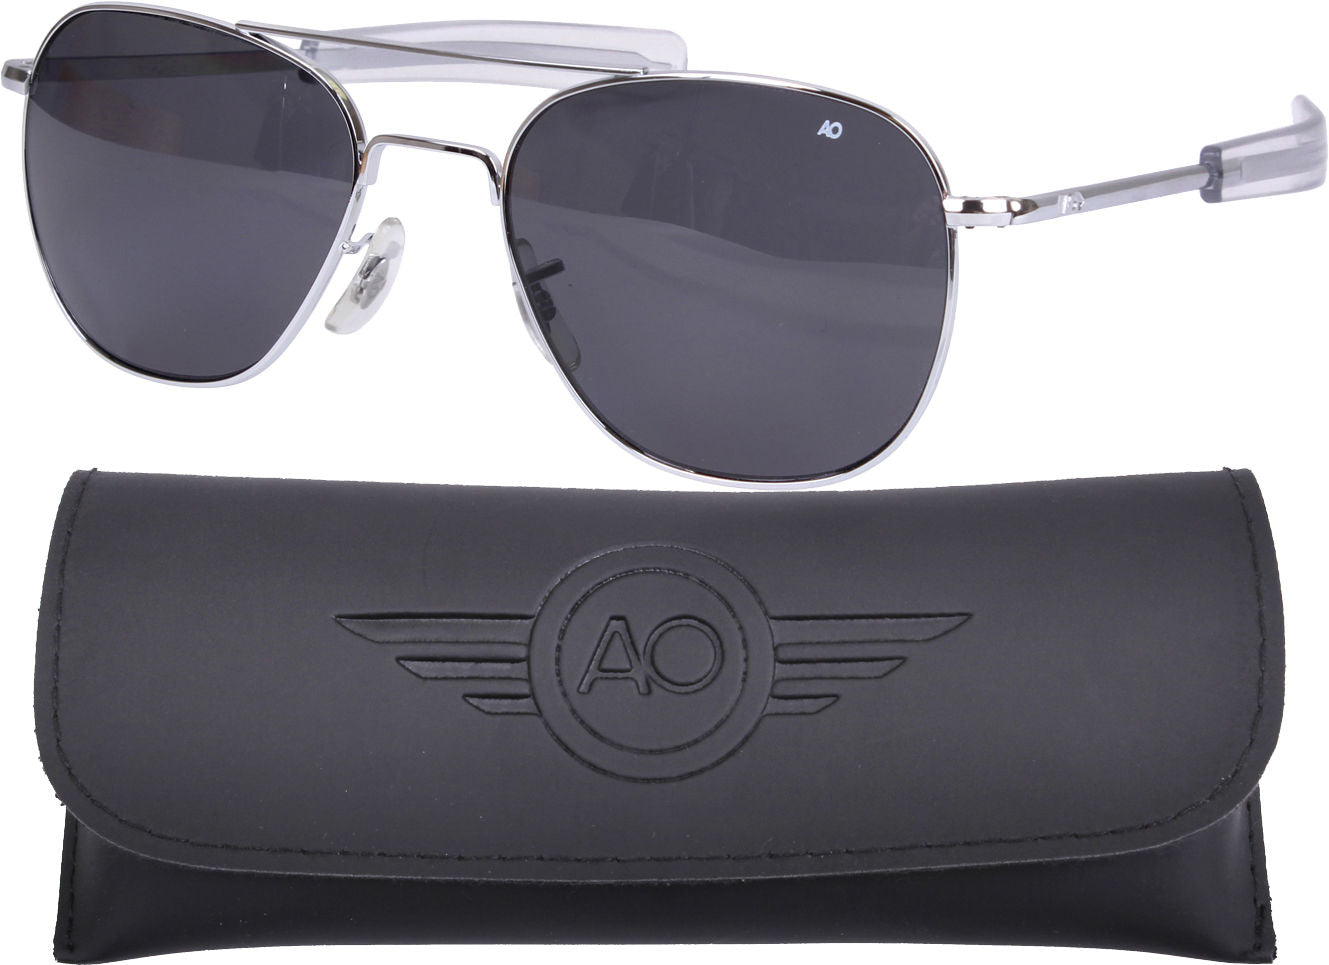 AO Eyewear Chrome Aviators 55mm Grey Lenses Polarized Air Force Pilot Sunglasses